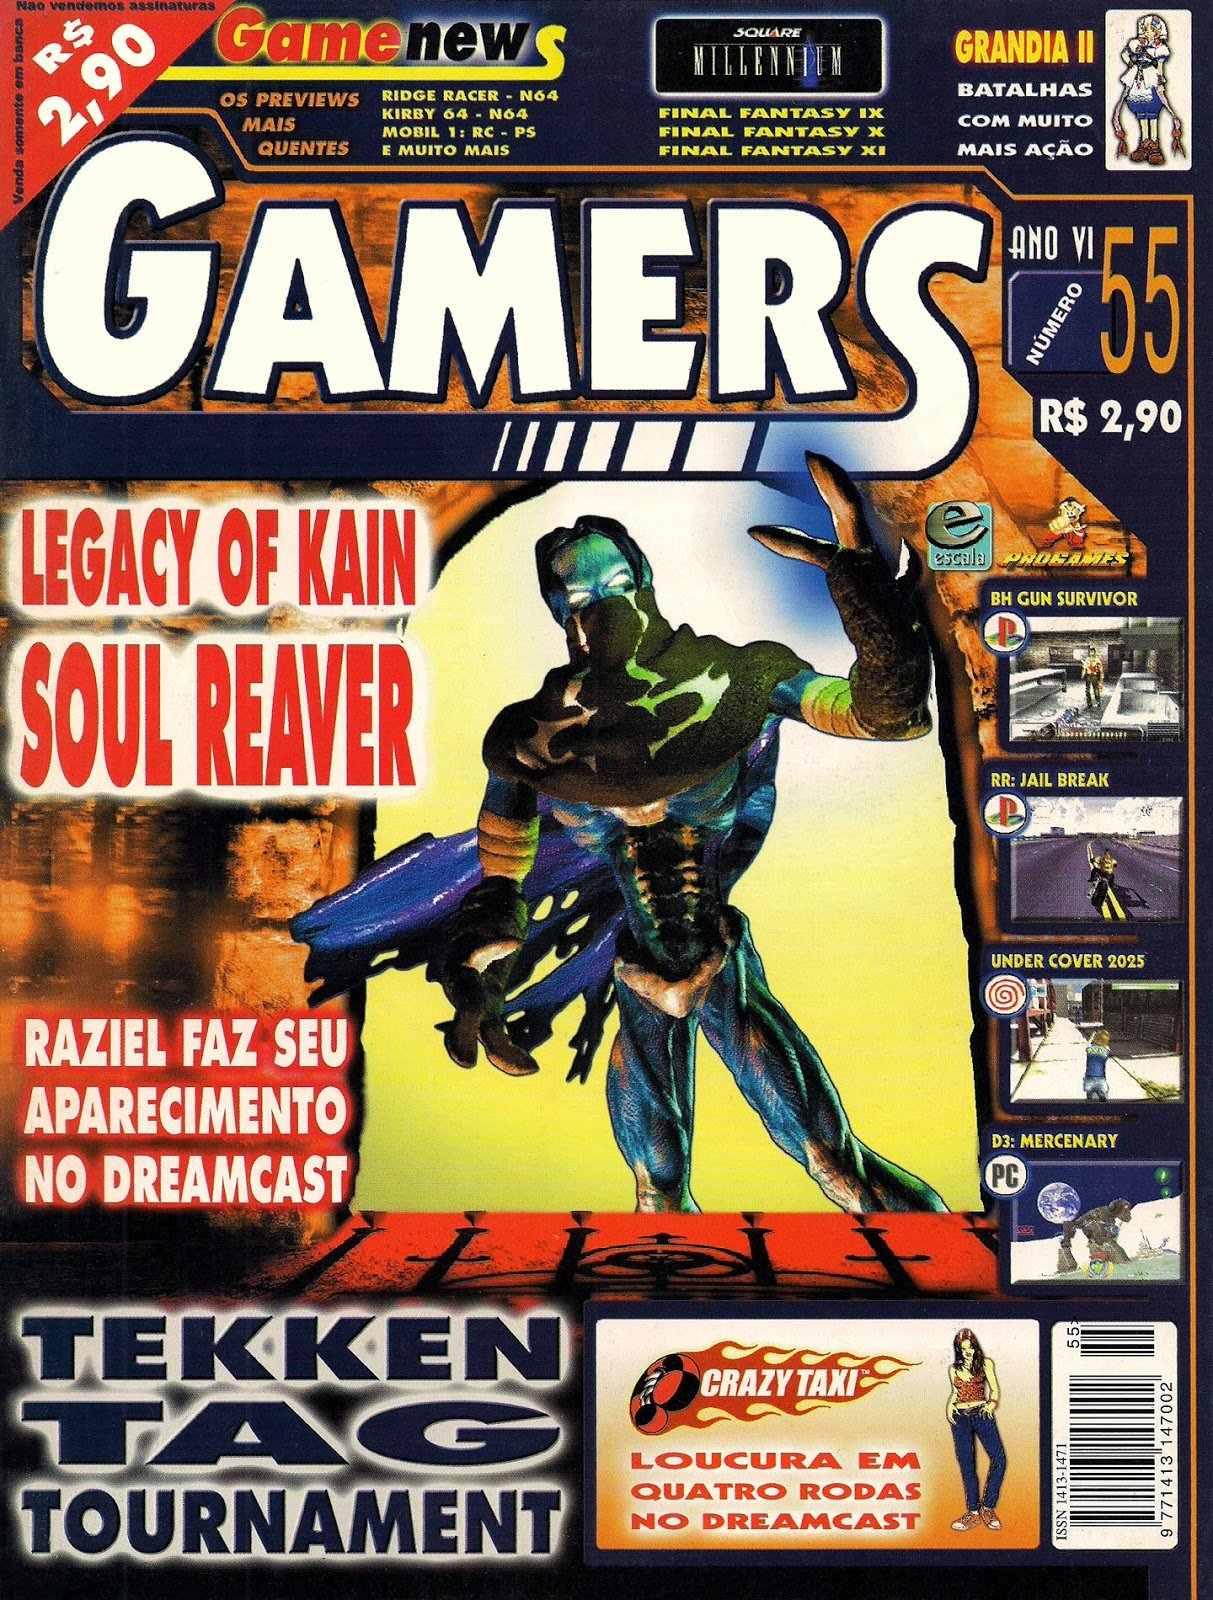 Gamers Issue 55 (2000)